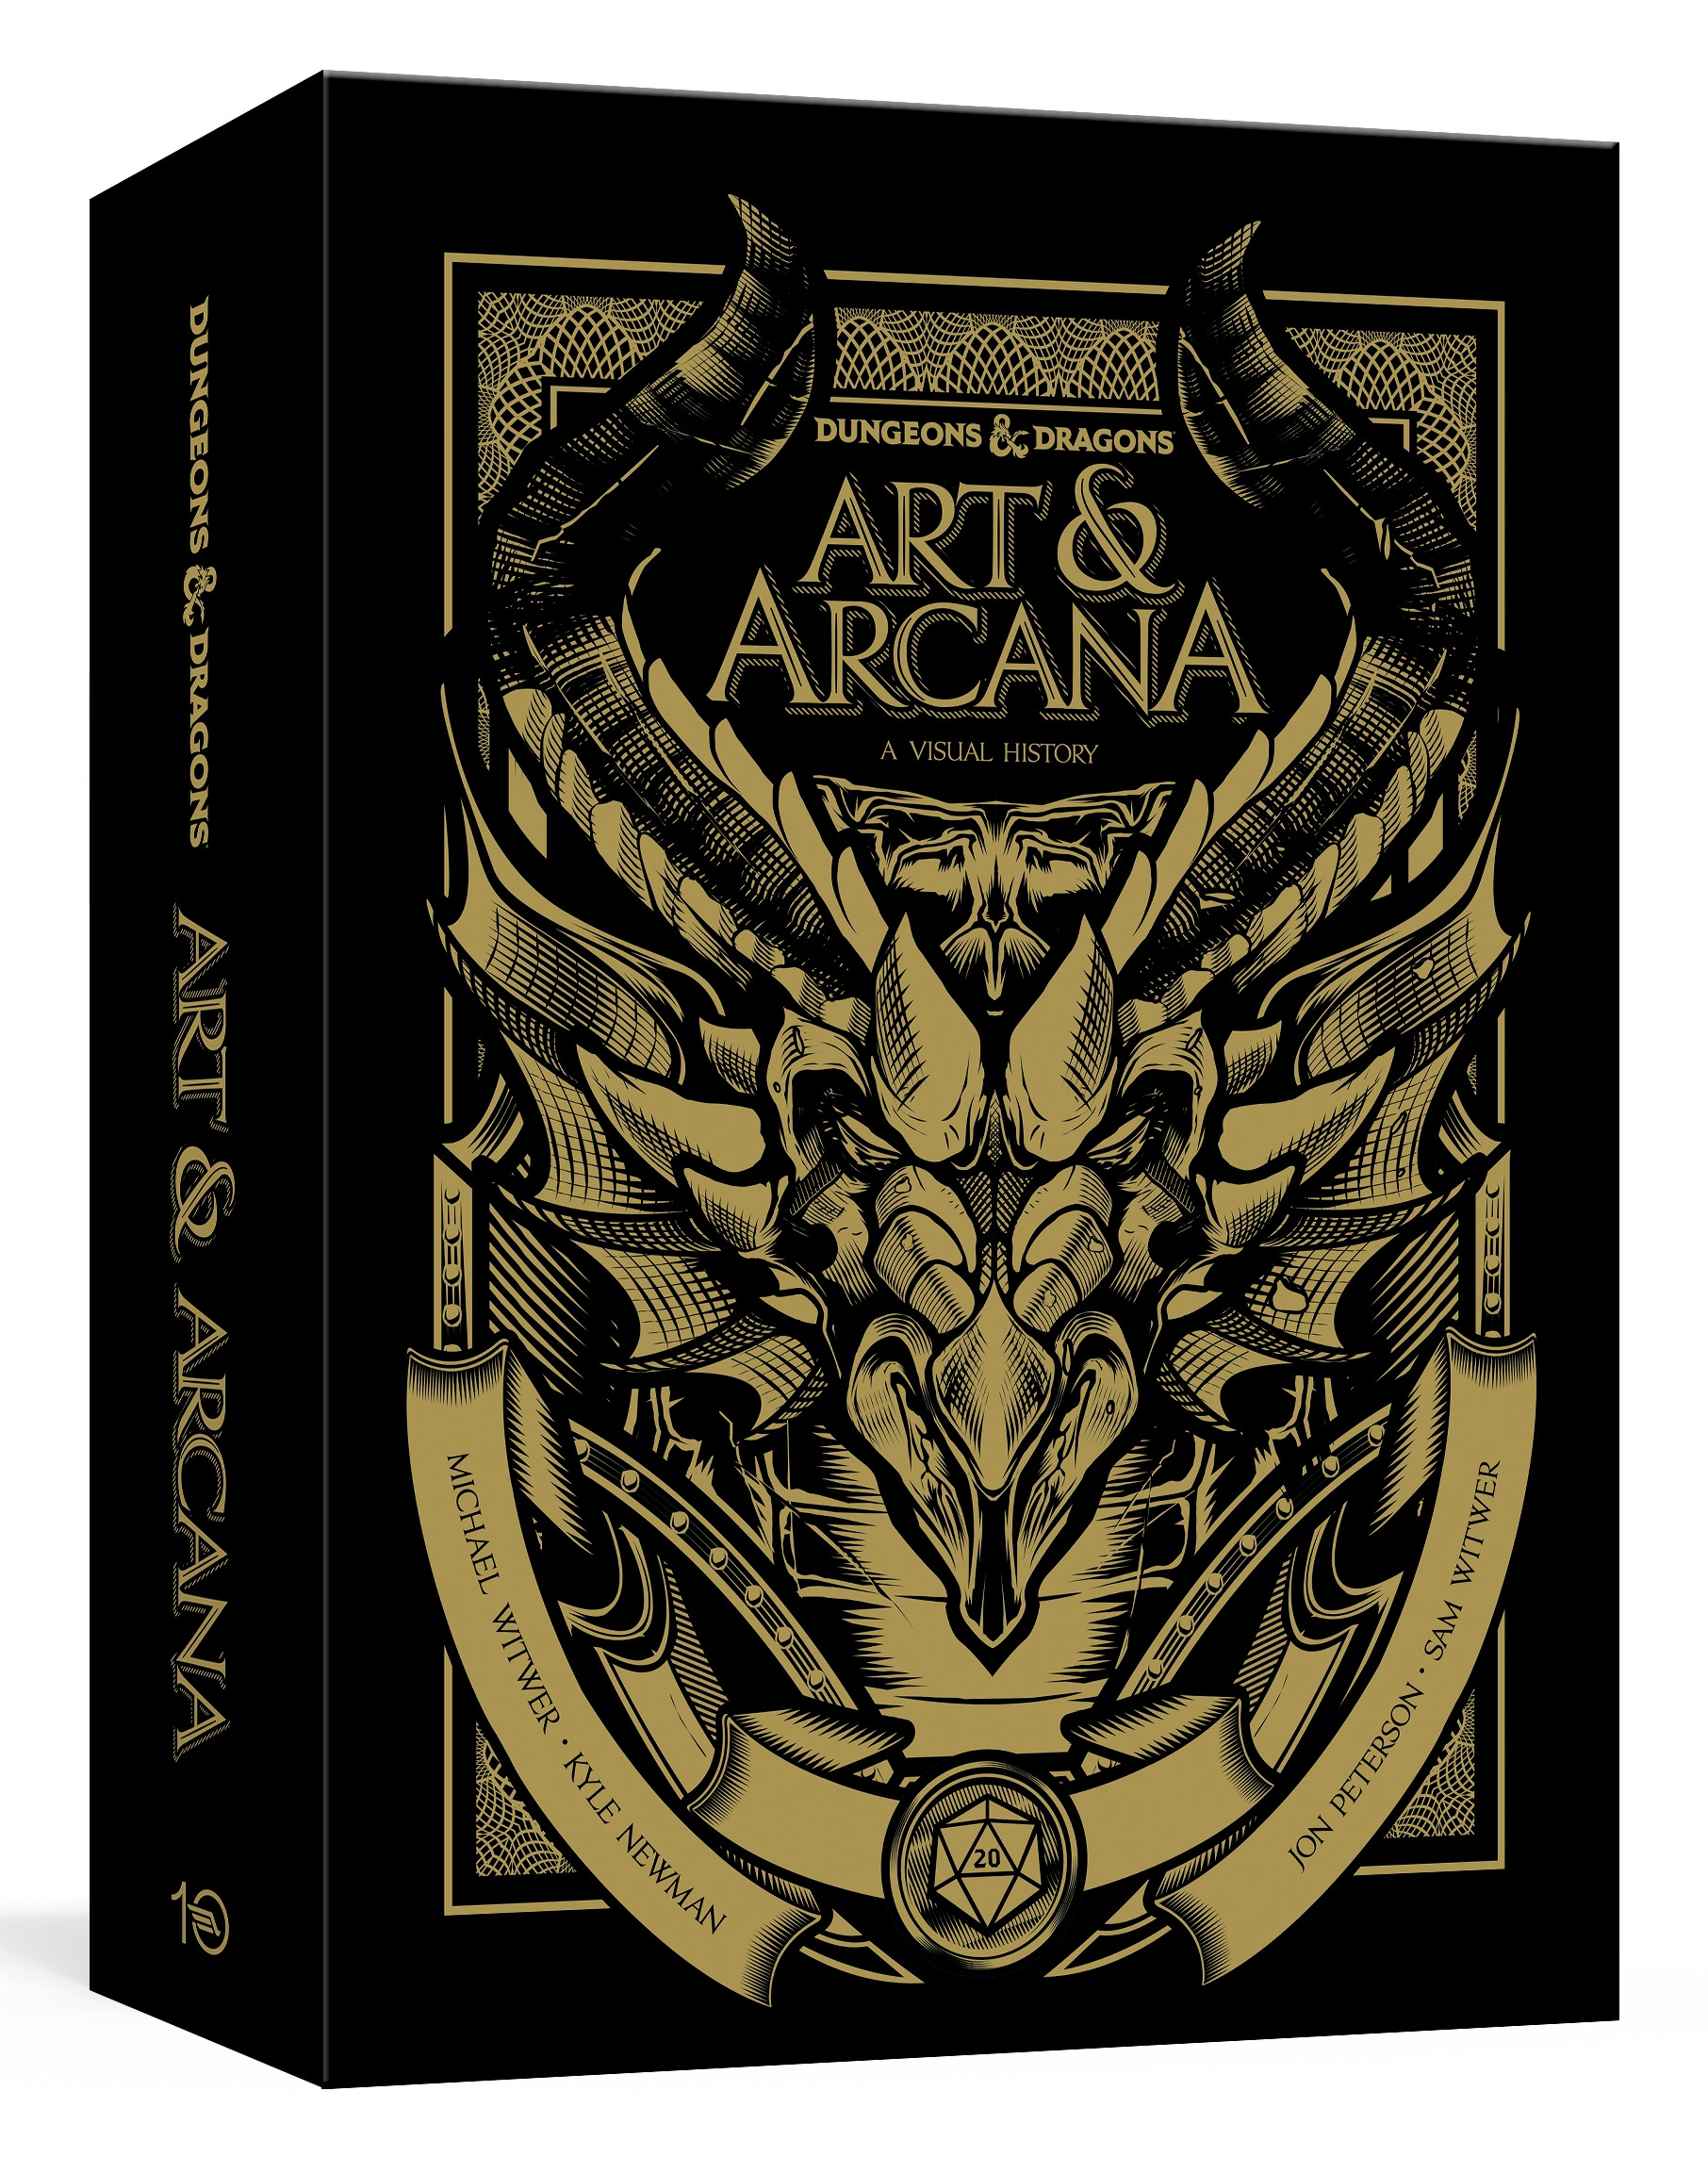 Dungeons and Dragons Art and Arcana [special Edition, Boxed Book & Ephemera]: A Visual History by Michael Witwer, ISBN: 9780399582752